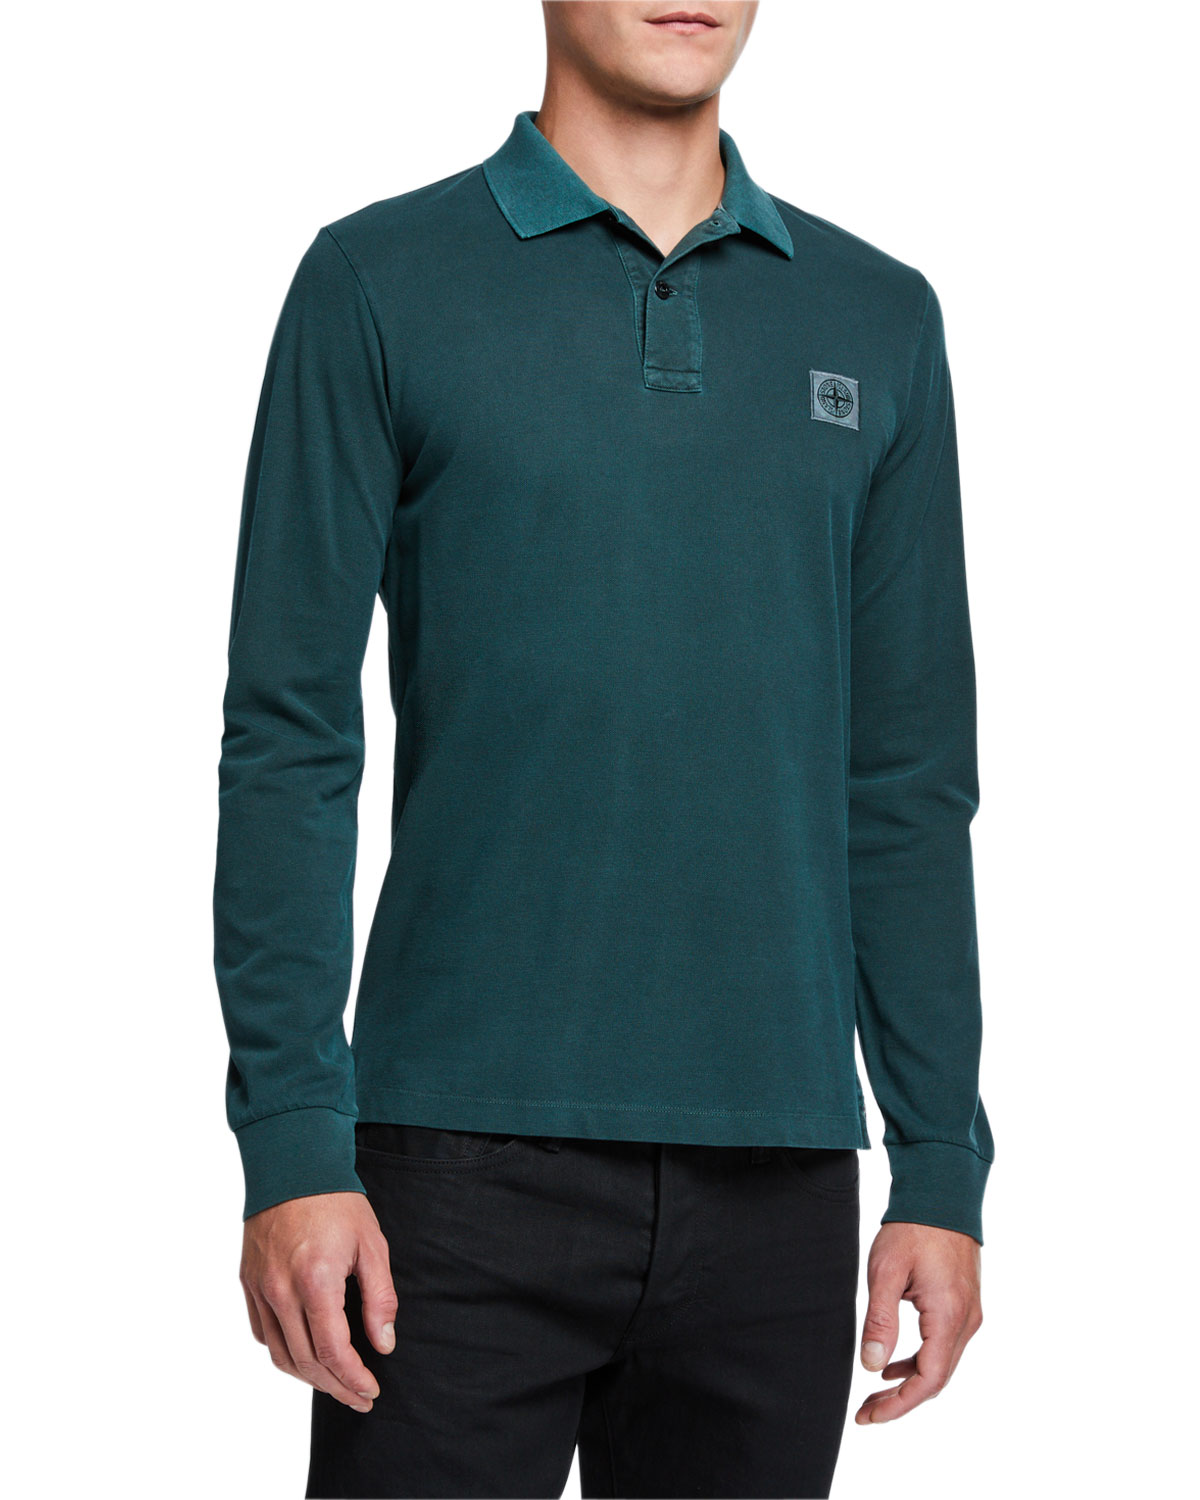 Stone Island T-shirts MEN'S LONG-SLEEVE COTTON POLO SHIRT